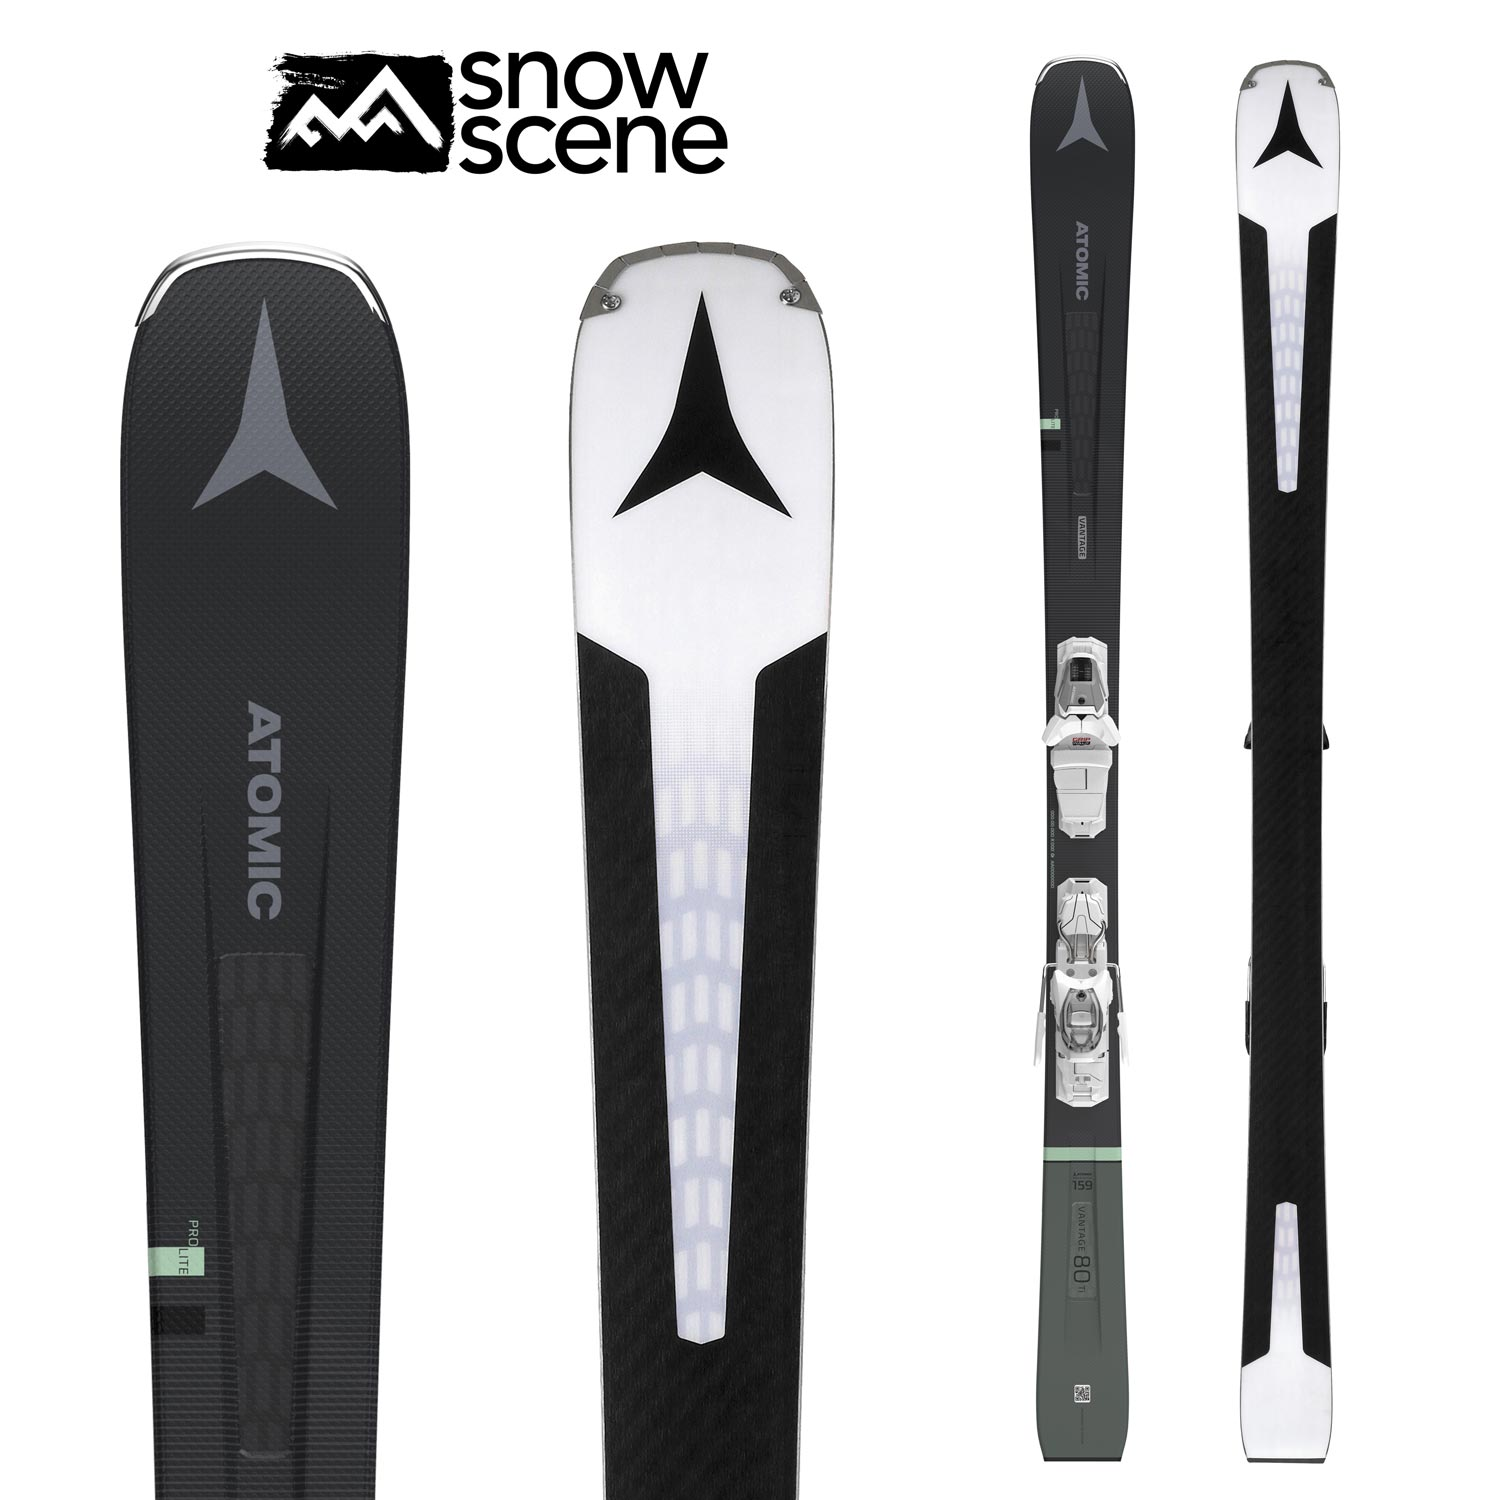 2021 Atomic Vantage 80 Ti W- Shop Skis and snow gear online nz - snowscene